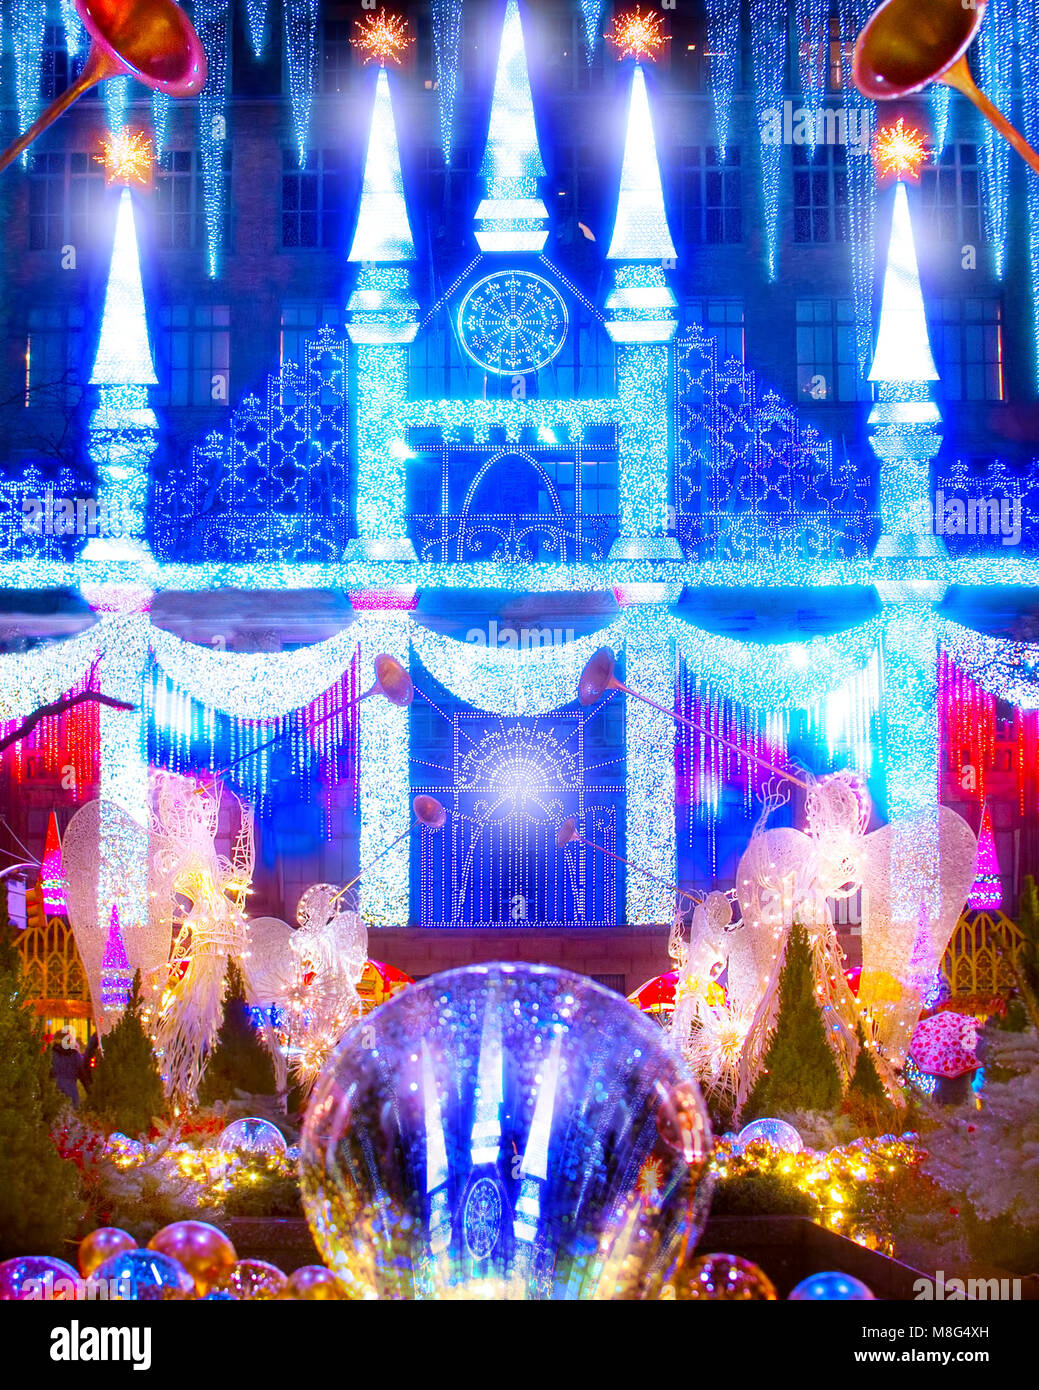 The wonderful and amazing Christmas laser light show projected on the front of Saks Fifth Avenue at Rockefeller - Stock Image